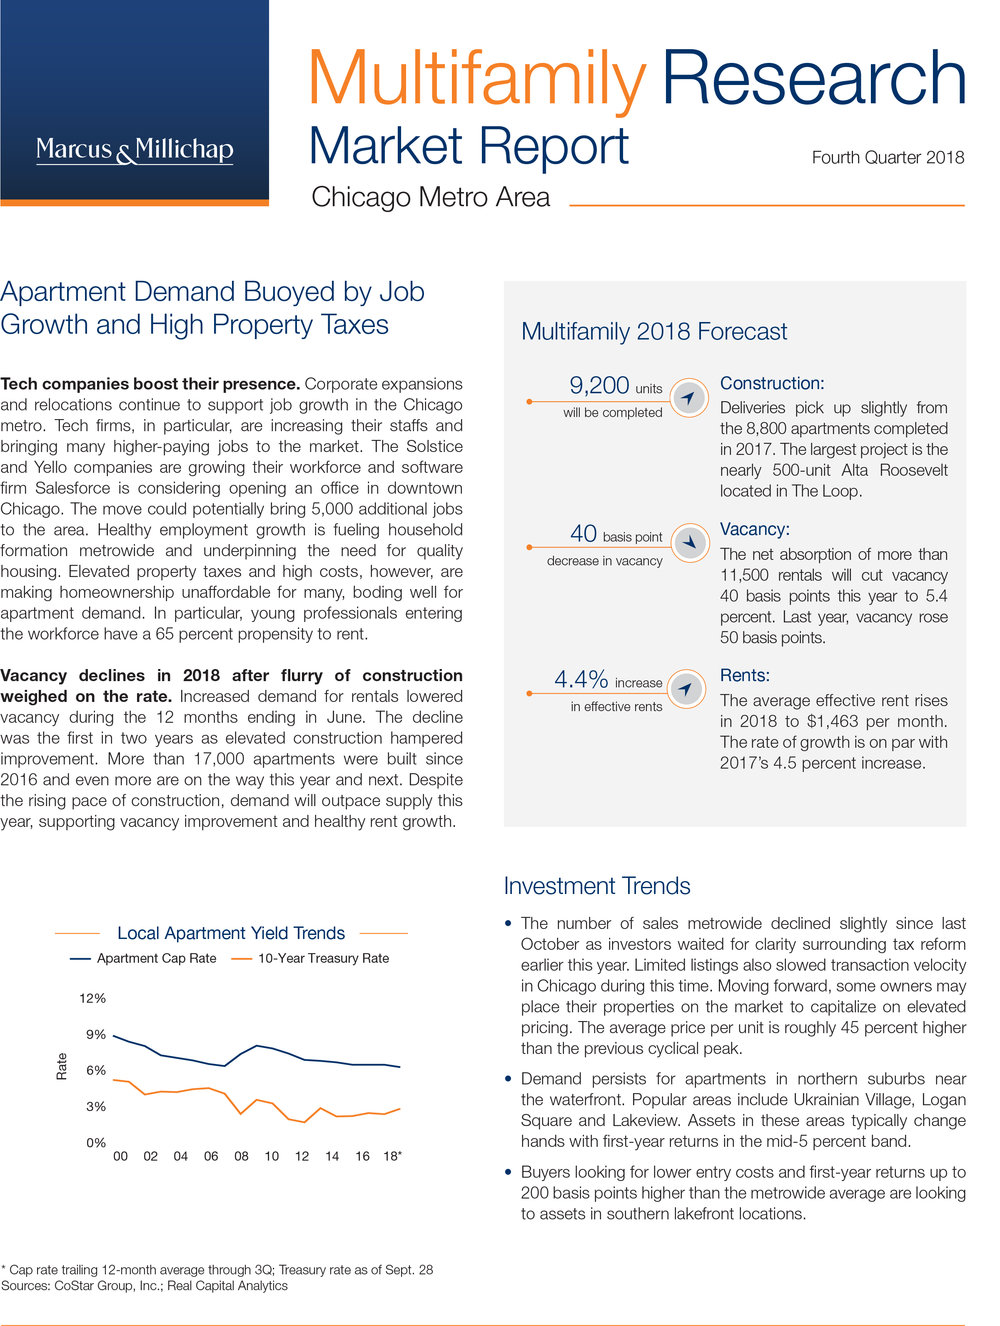 4Q18 Chicago Local Apartment Report-1.jpg